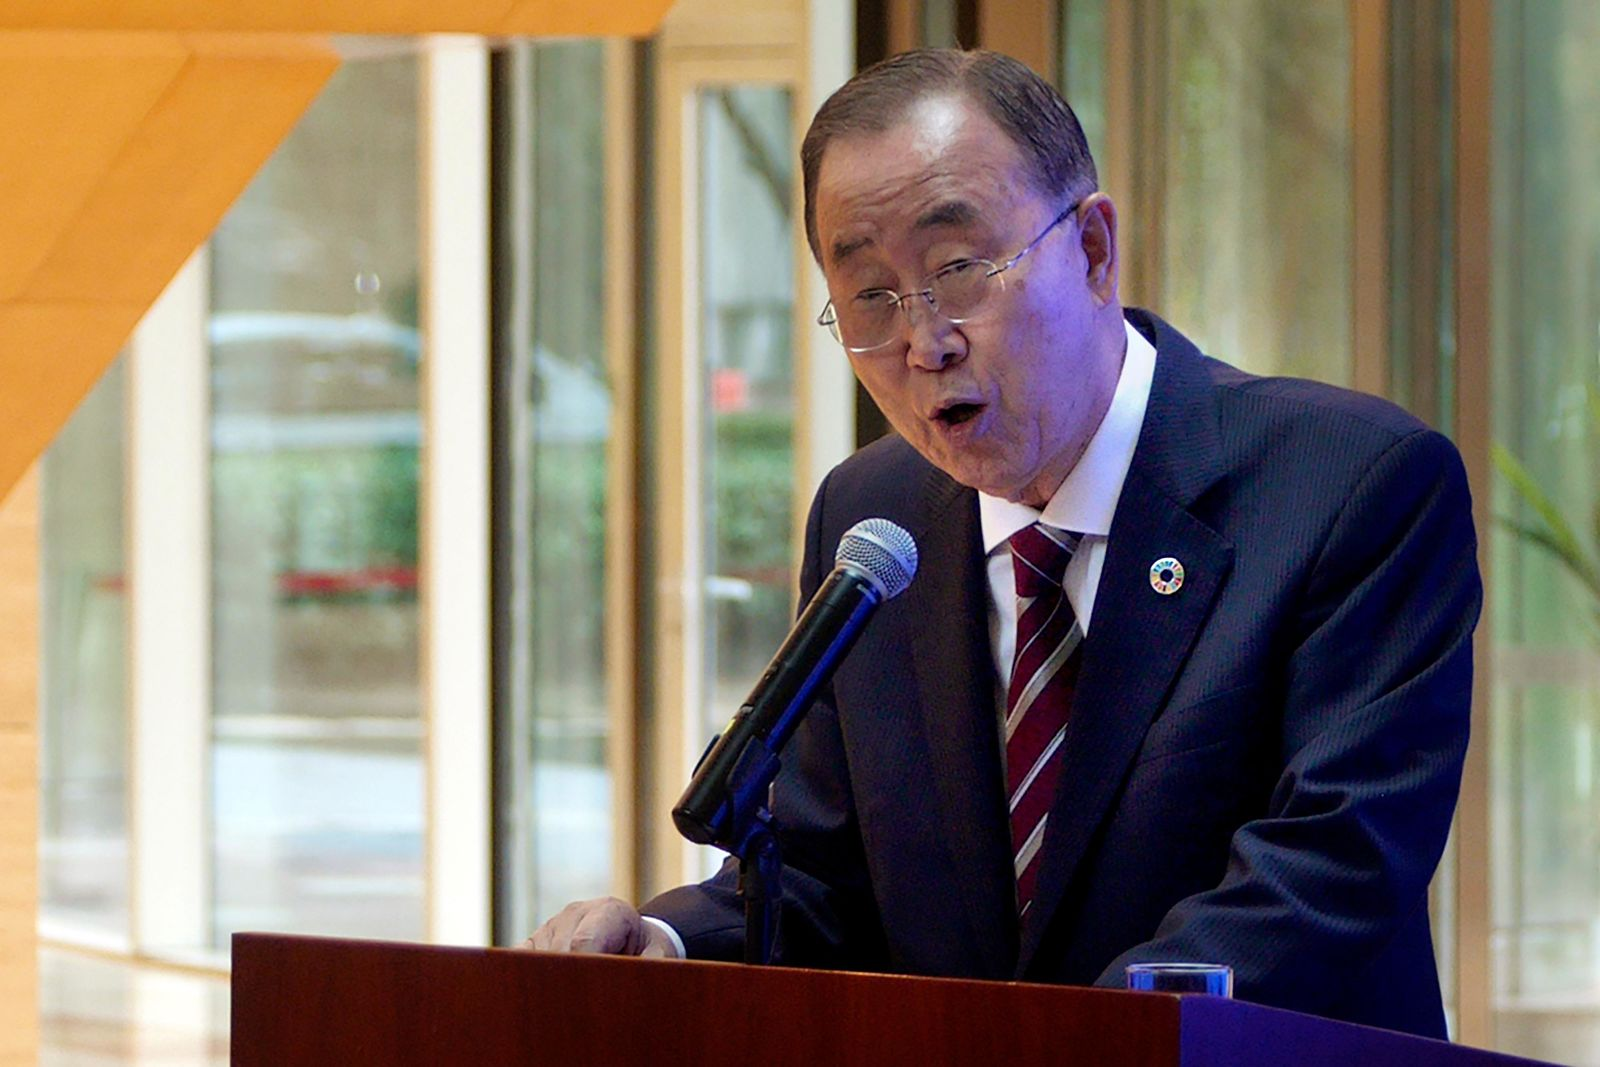 Former U.N. Secretary-General Ban Ki-moon speaks during a press conference for the release of a report on adapting to climate change in Beijing, Tuesday, Sept. 10, 2019.{ } (AP Photo/Sam McNeil)